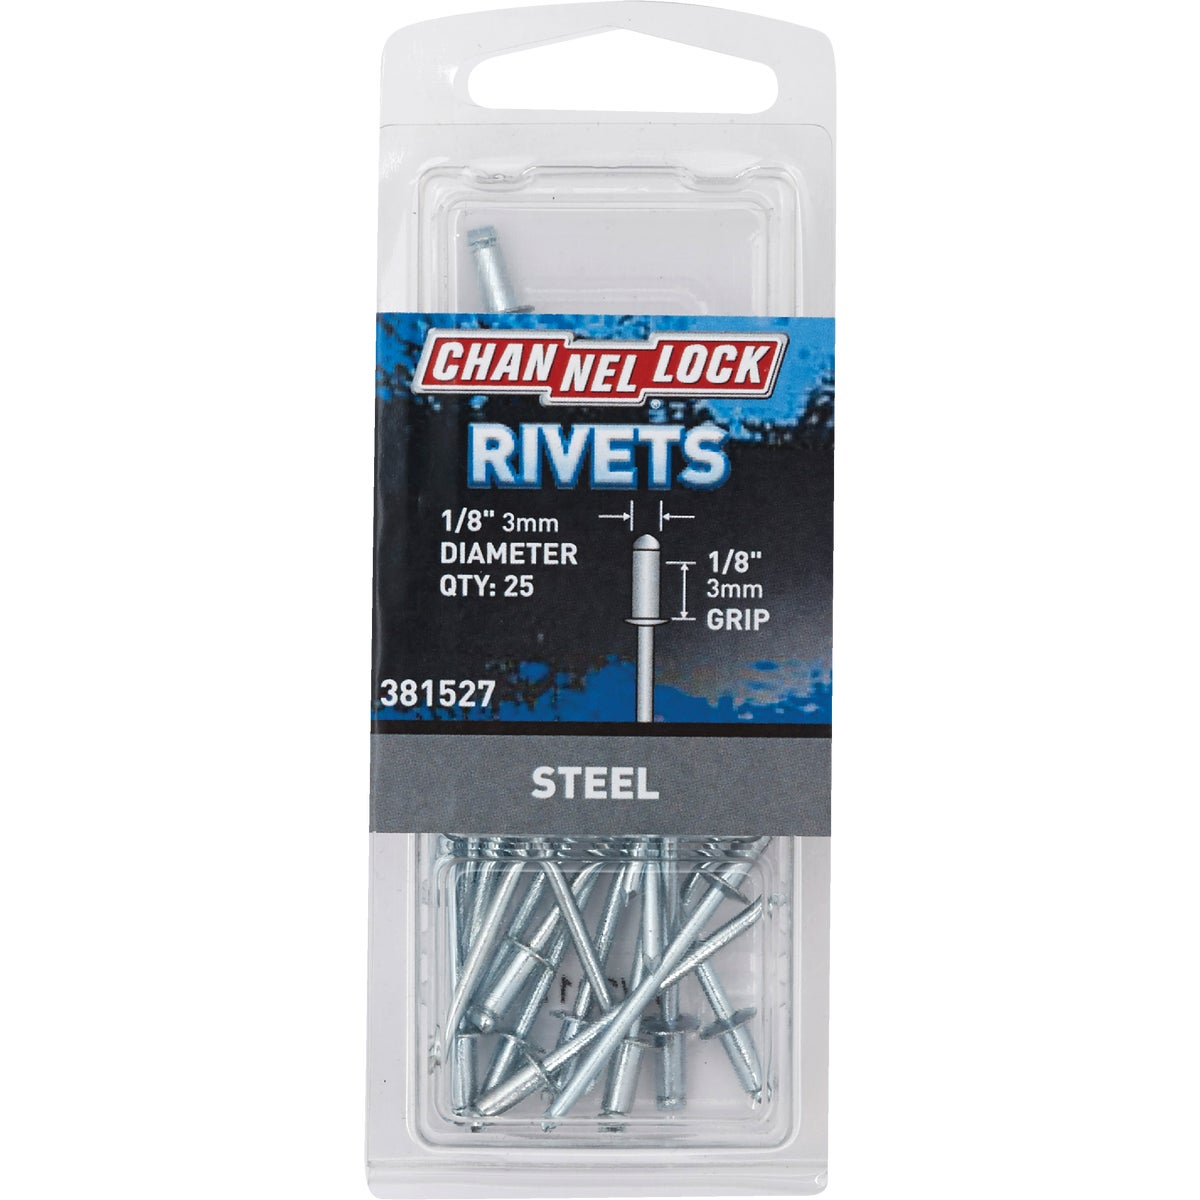 1/8X1/8 STL RIVET - 381527 by Do it Best